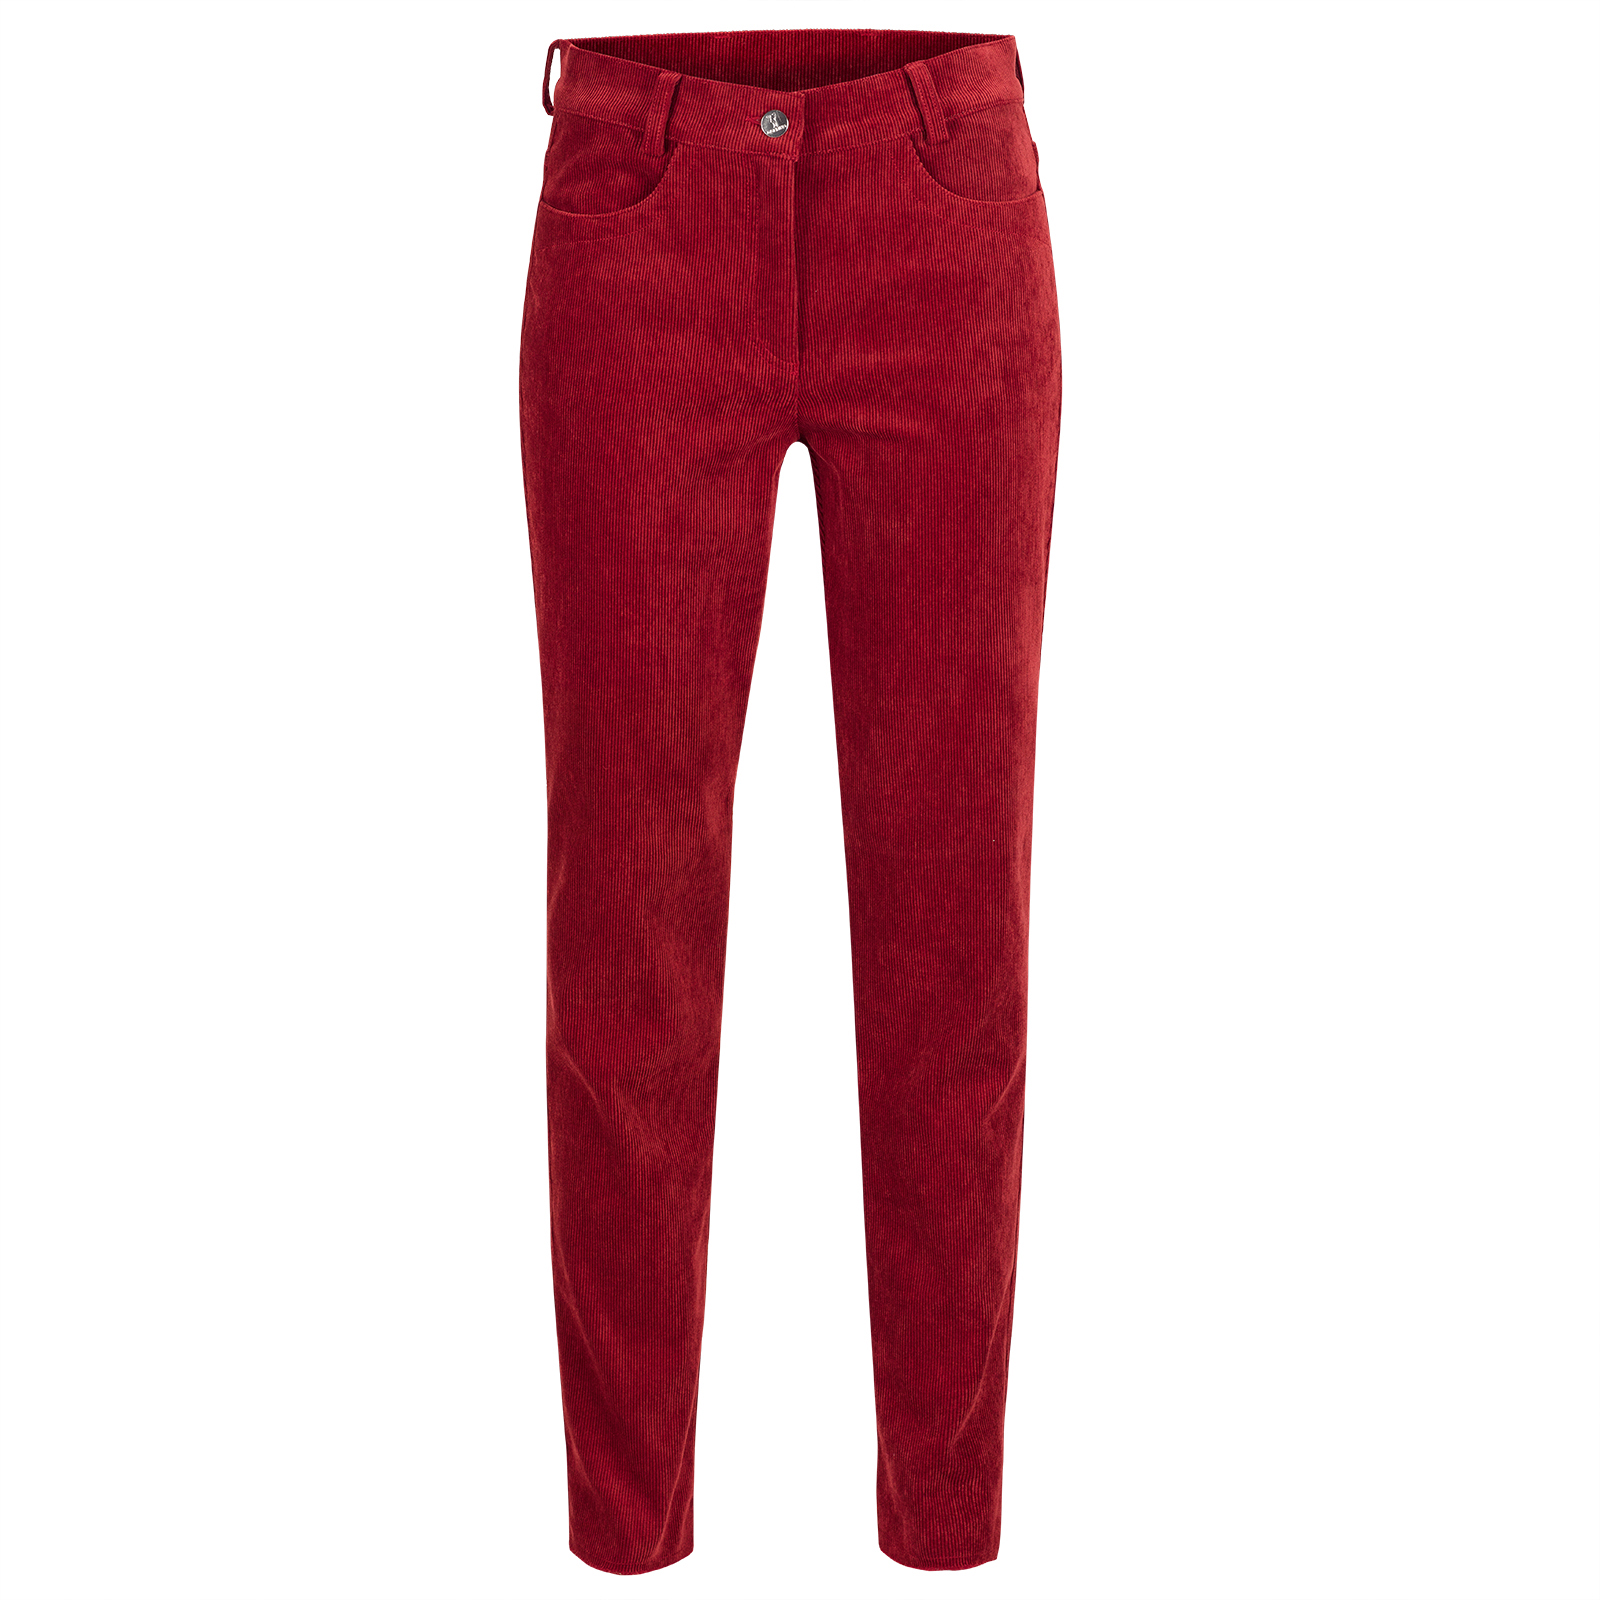 Ladies' 7/8 slim-fit designer cord golf trousers made from a soft cotton blend